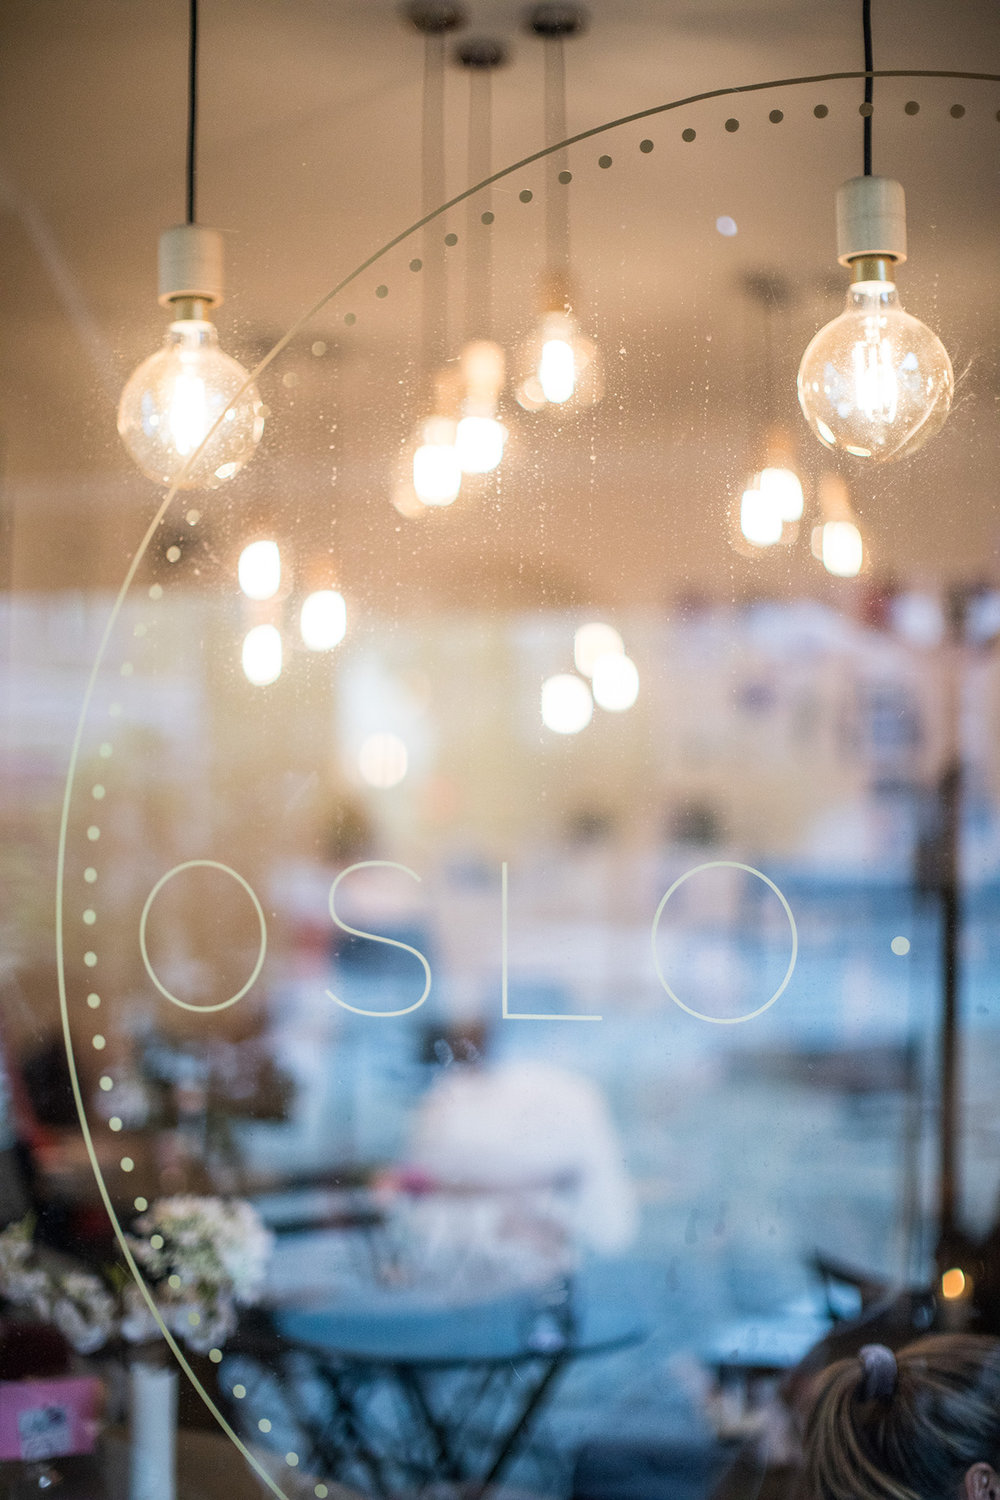 Oslo Raw, Instagrammer's guide to Oslo - 91 Magazine